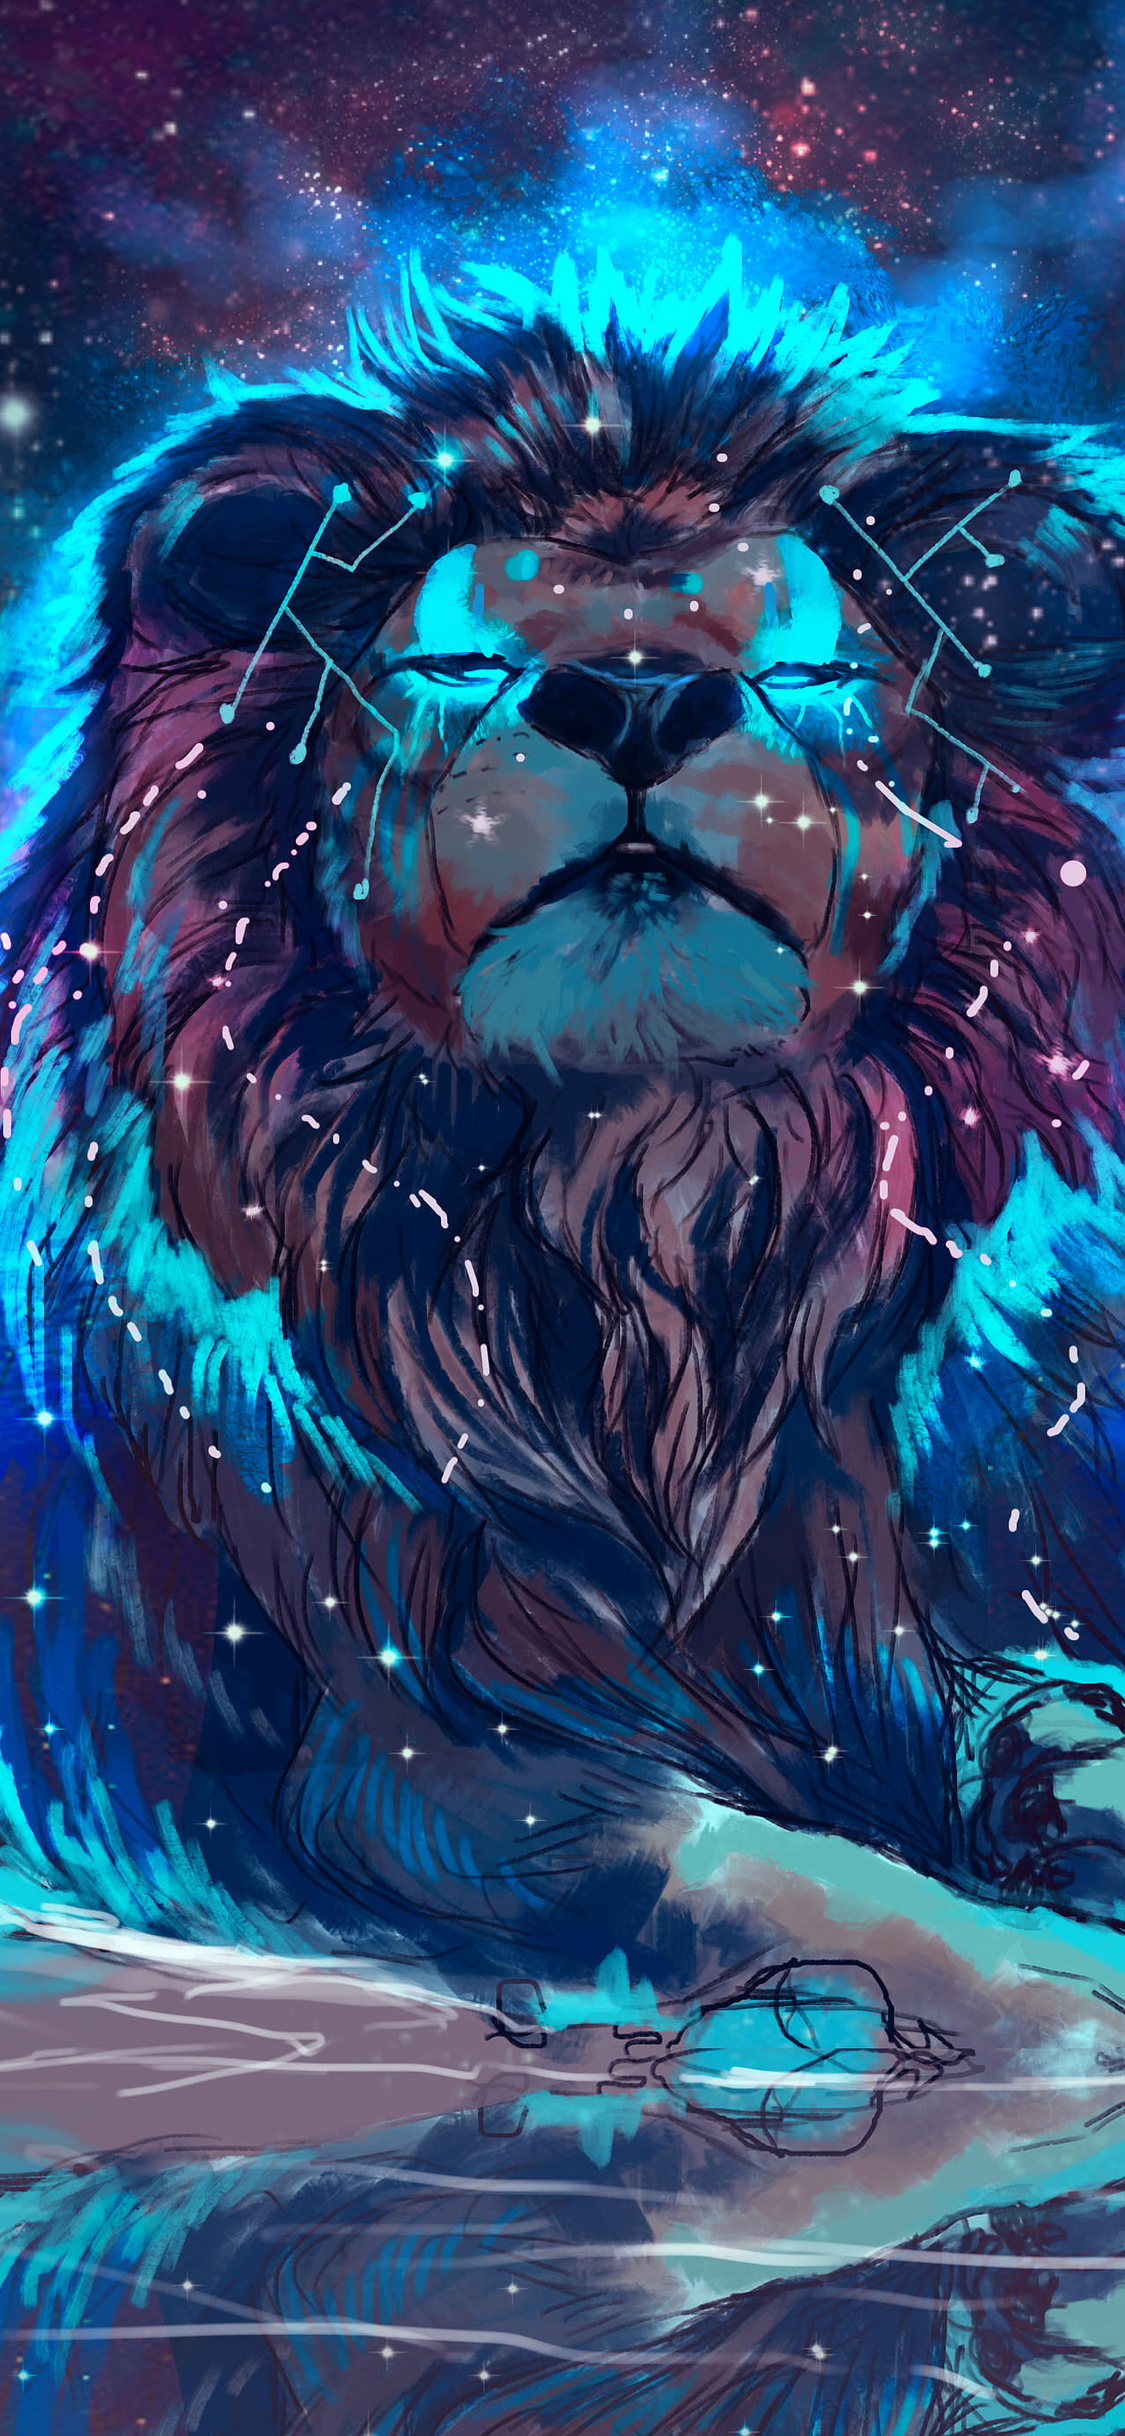 1125x2436 lion 4k artistic colorful iphone xs iphone 10 - Lion 4k wallpaper for mobile ...